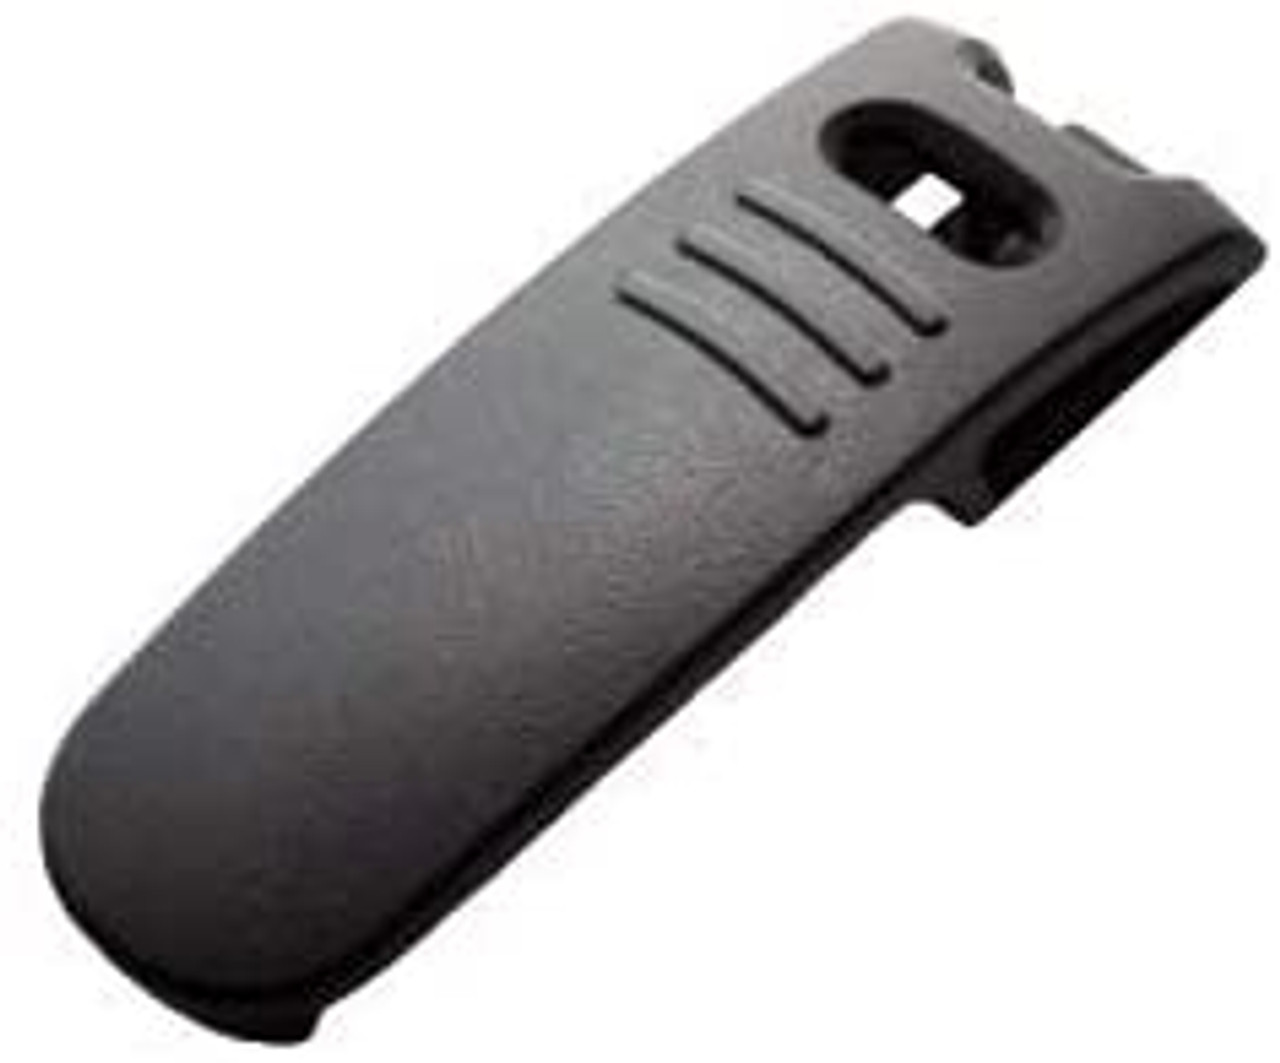 Standard Horizon CLIP-24 Replacement Belt Clip for HX-100 & HX-150 Marine Handhelds